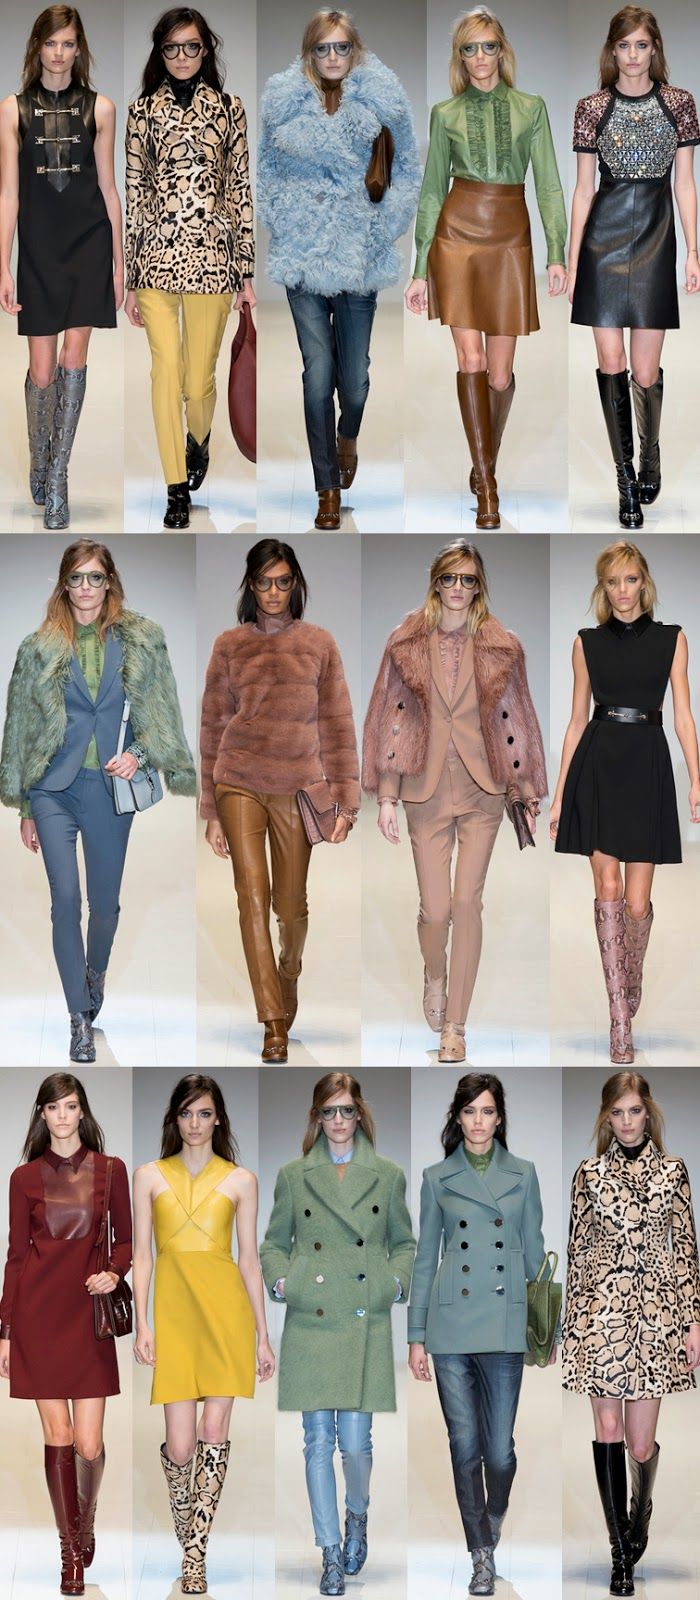 Gucci fall winter 2014 runway collection, FW14, AW14, MFW, Milan fashion week, Frida Giannini